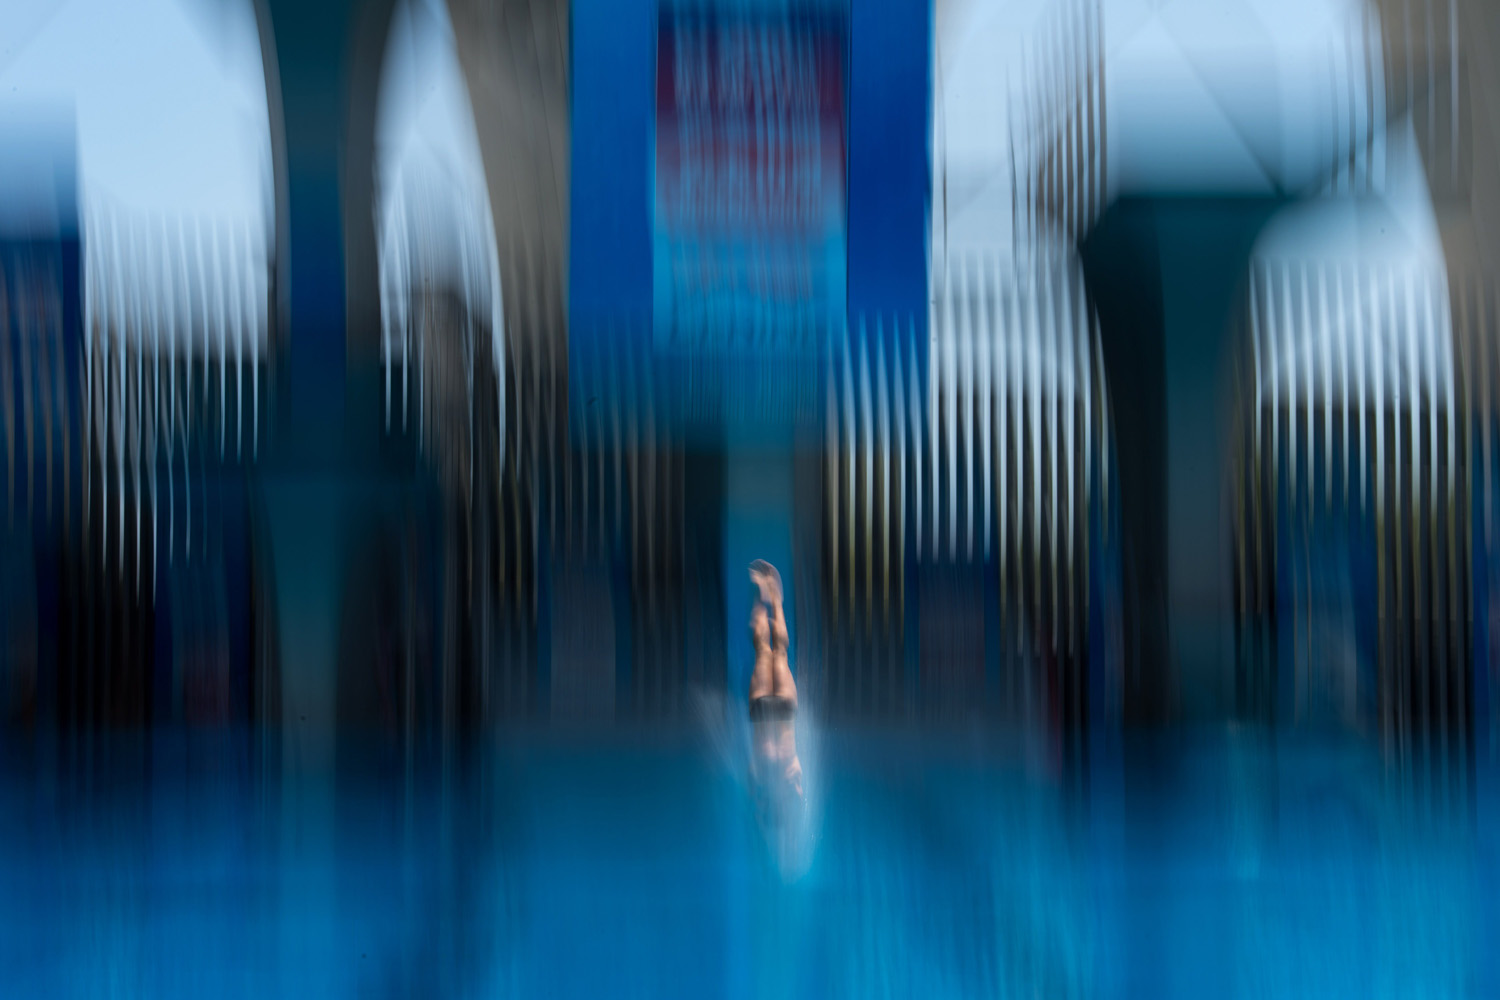 Jul. 20, 2014. David Dinsmore of the US competes during the men's 10 metre semi-final platform event at the 19th FINA Diving World Cup in Shanghai.